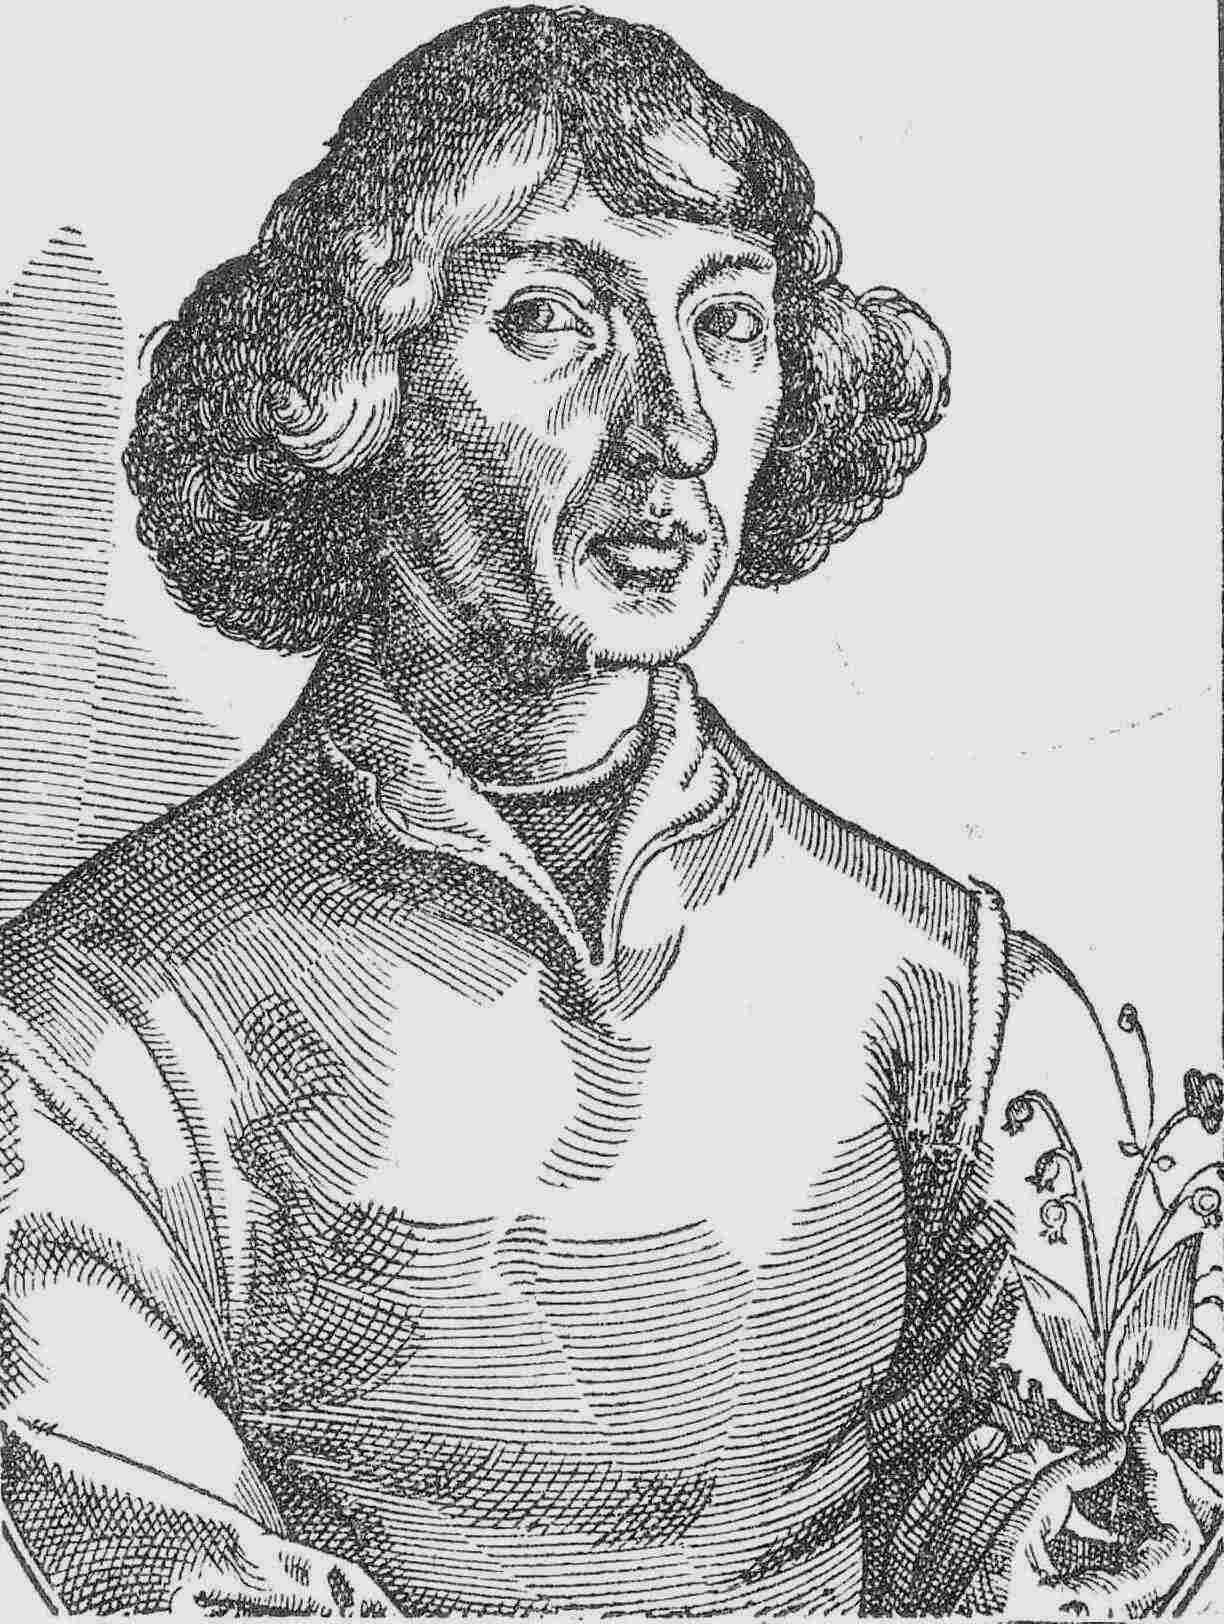 Portrait of Copernicus holding a lily of the valley, published in Nicolaus Reusner's Icones (1587), based on a sketch by Tobias Stimmer (c. 1570), allegedly based on a self-portrait by Copernicus. This portrait became the basis of most later depictions of Copernicus